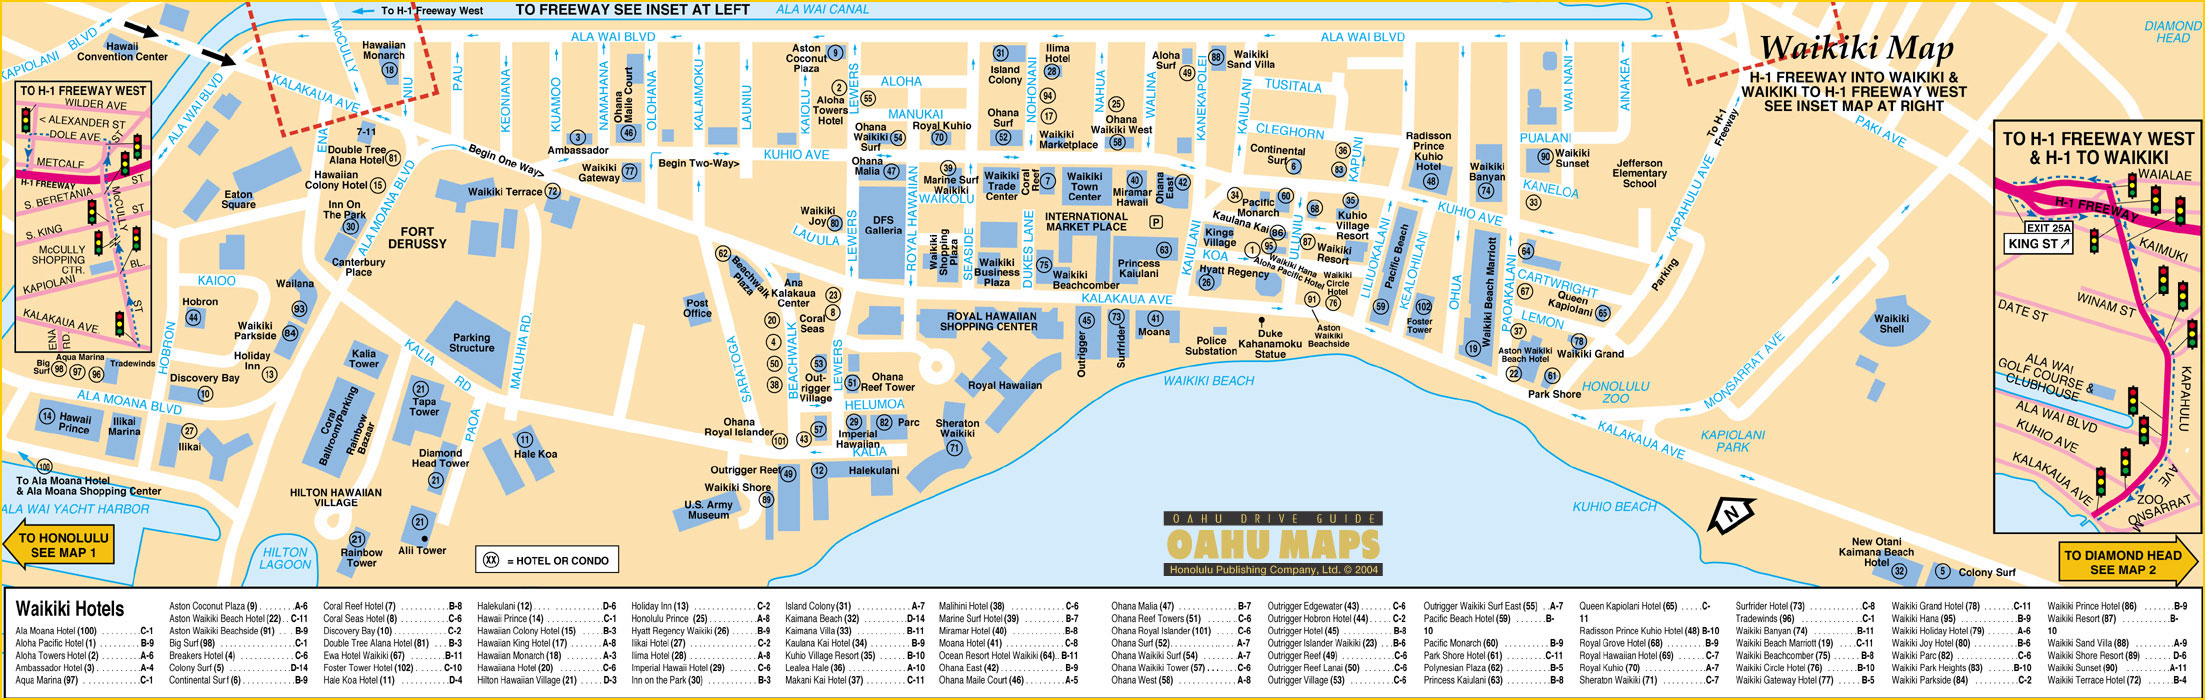 Waikiki Hawaii Spring Break 2017 Destinations Break Now – Santa Barbara Tourist Map